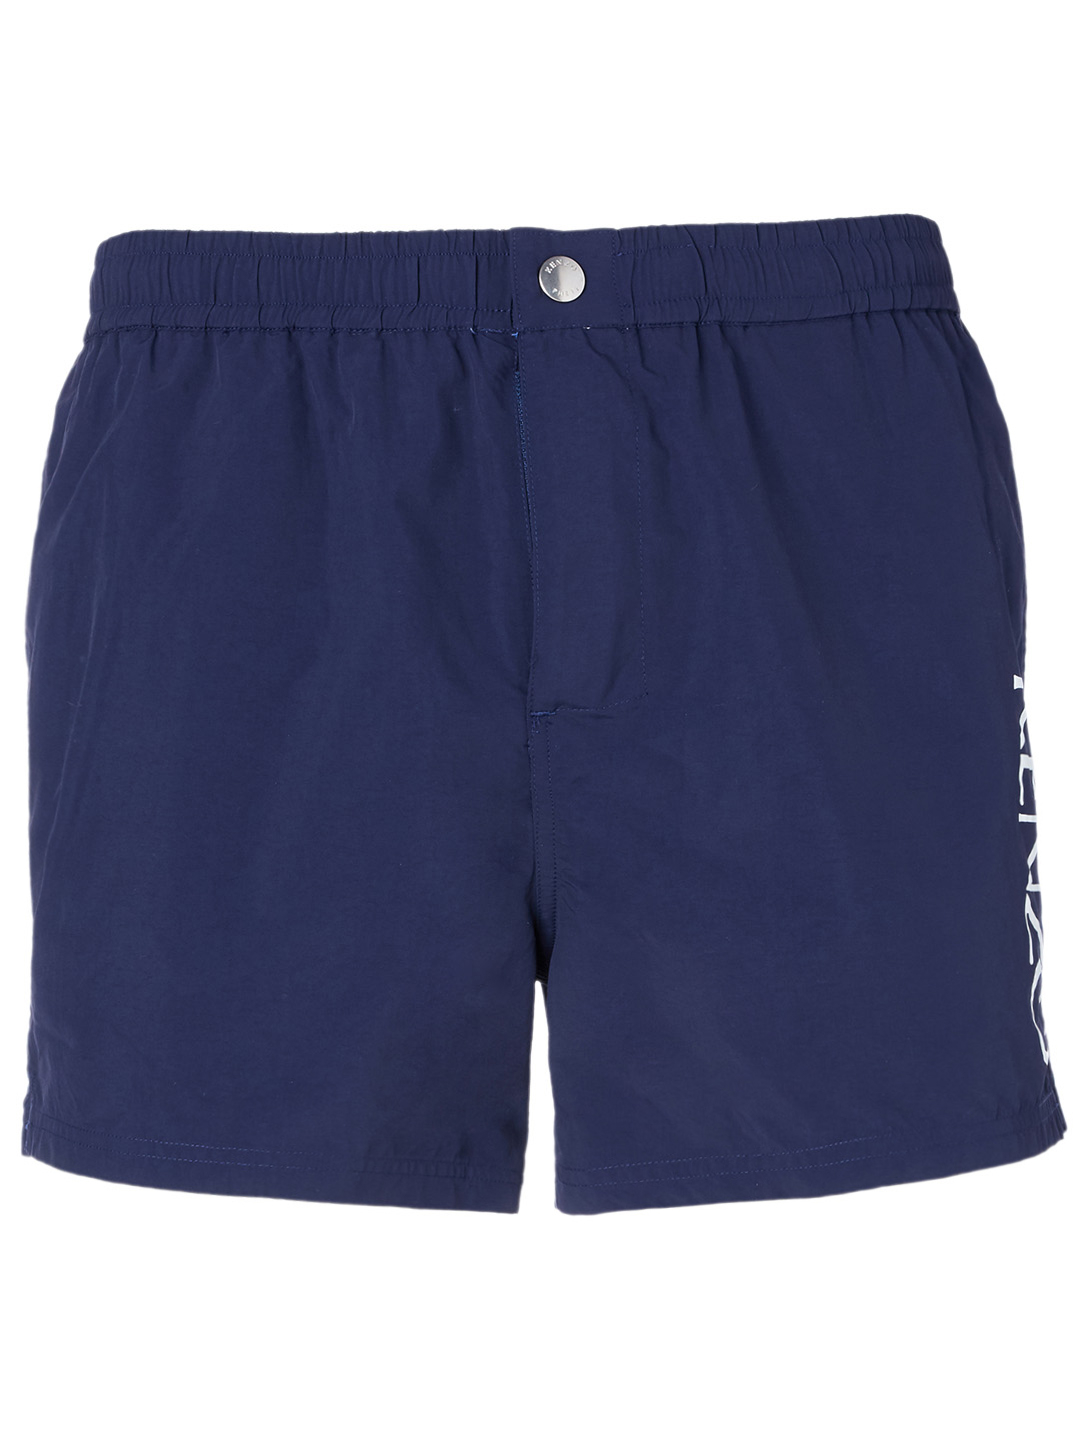 c6992a7315 KENZO Logo Swim Shorts Men's Blue ...